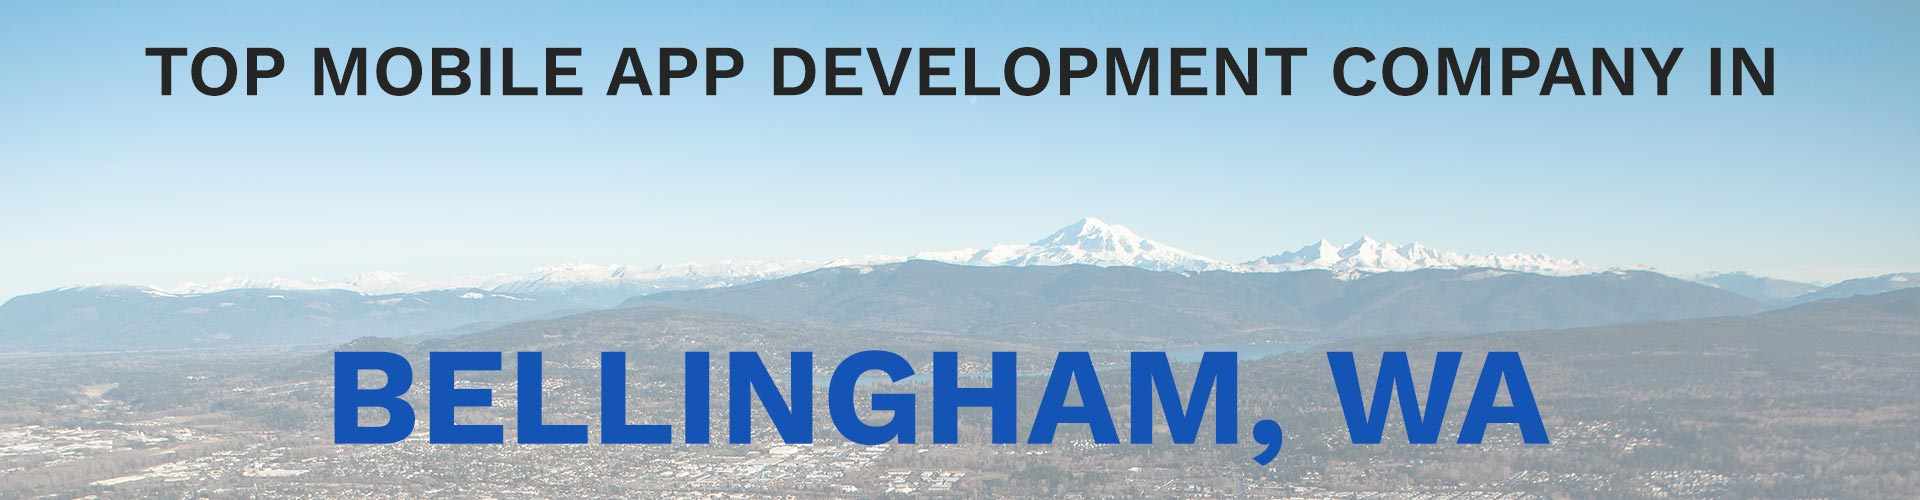 mobile app development company bellingham